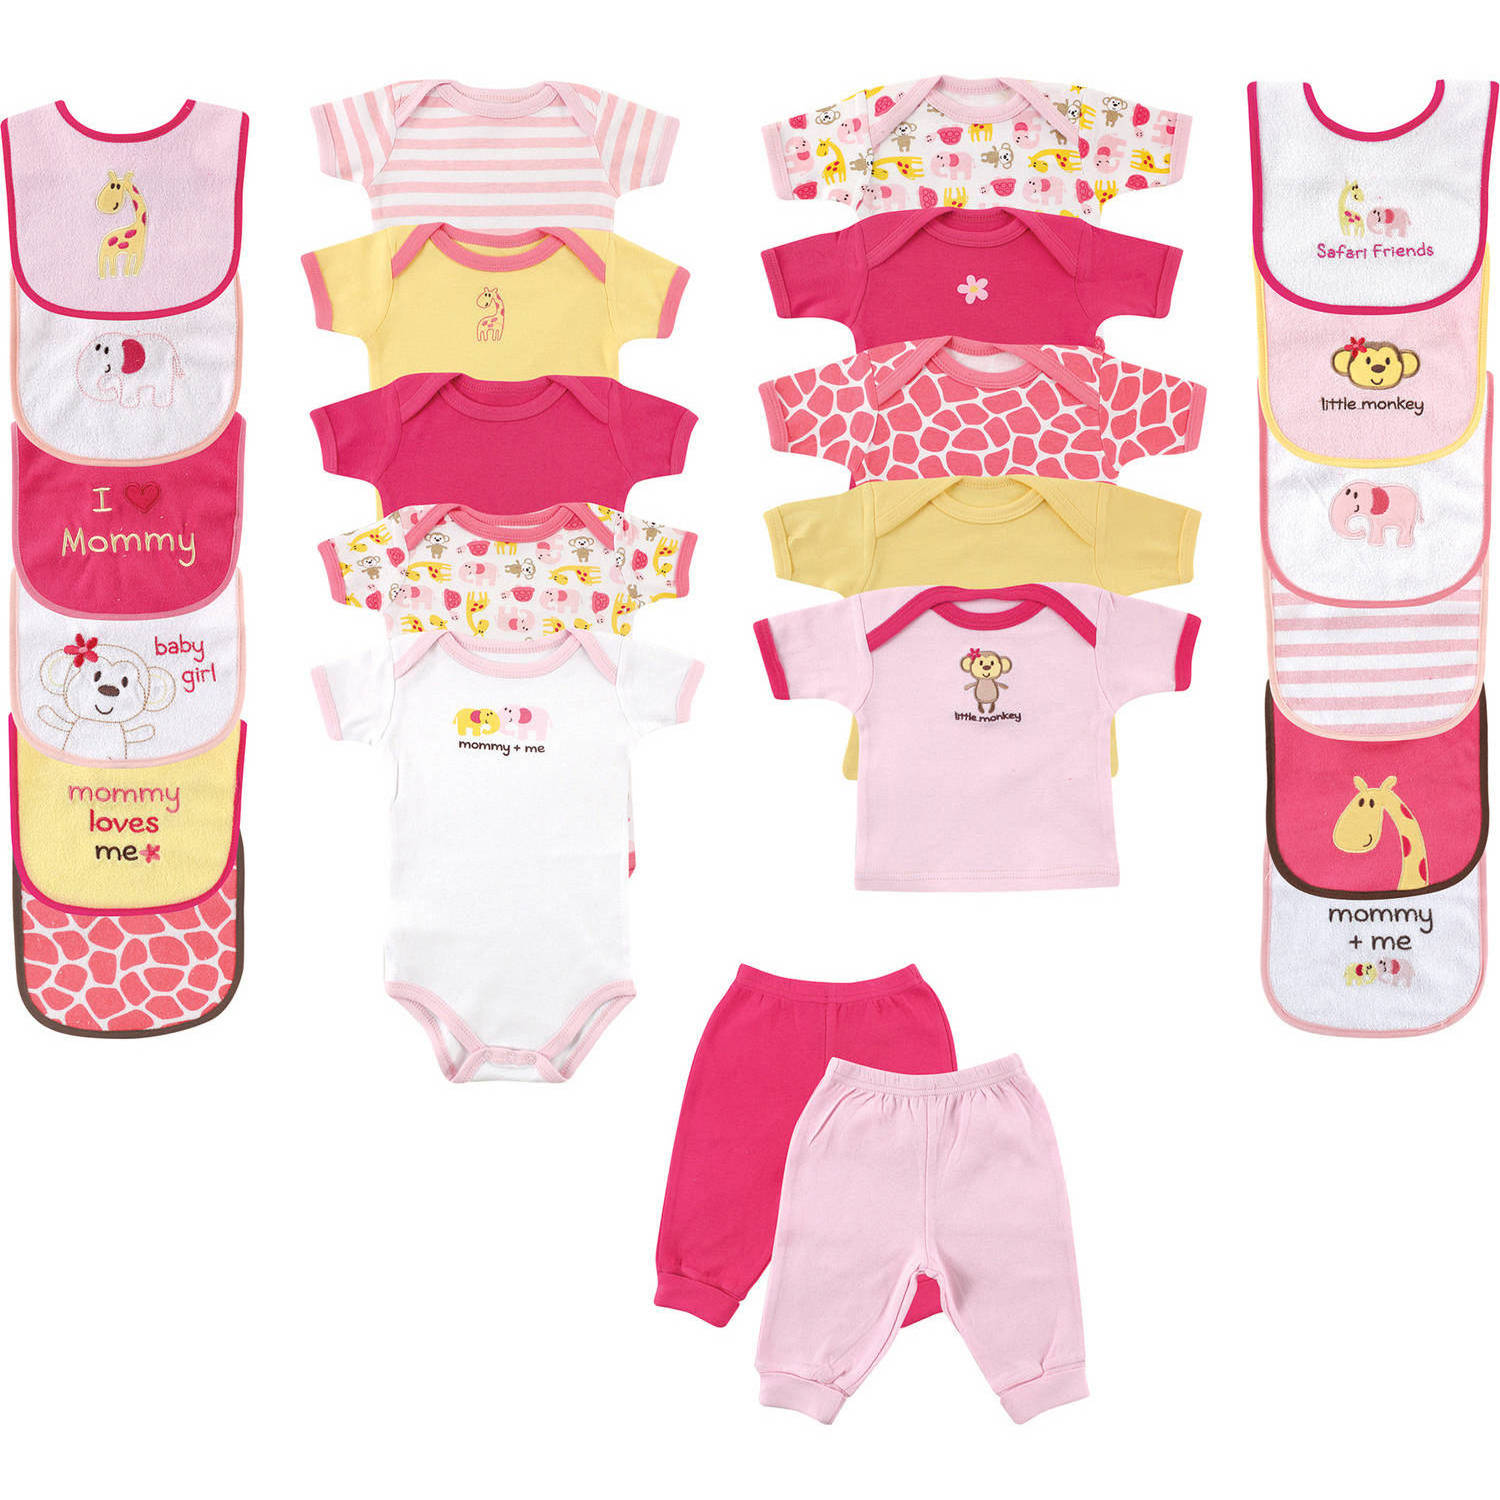 Newborn Baby Girl Deluxe Outfit Gift Set, 24pc